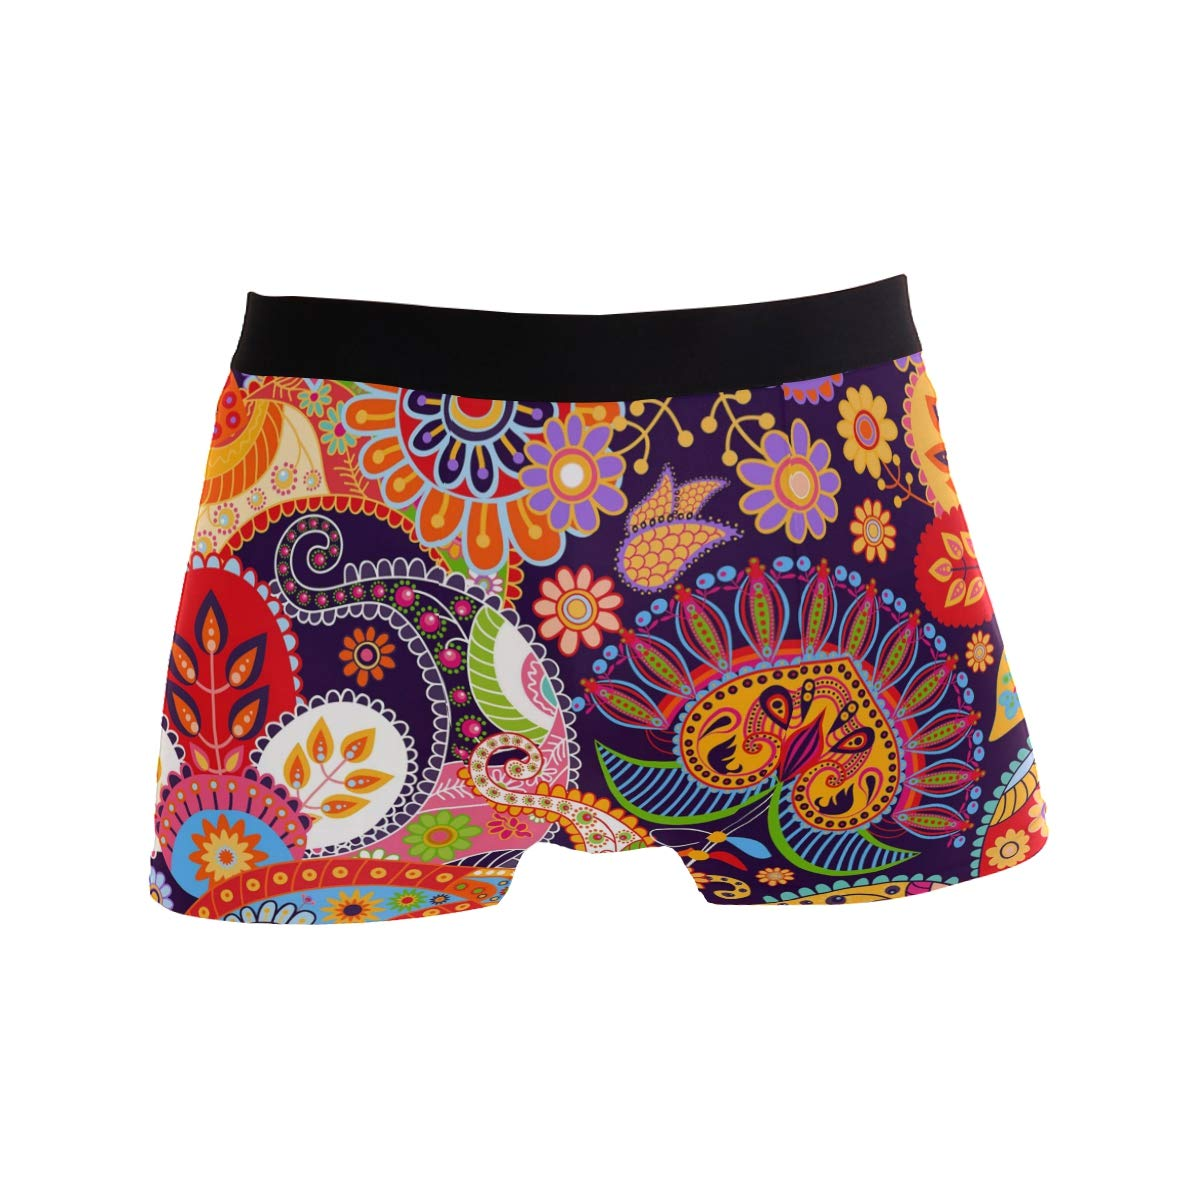 LEFEI Colorful Bright Seamless Pattern Men/'s Underwear Boxer Briefs Polyester Spandex Pouch,2-Pack